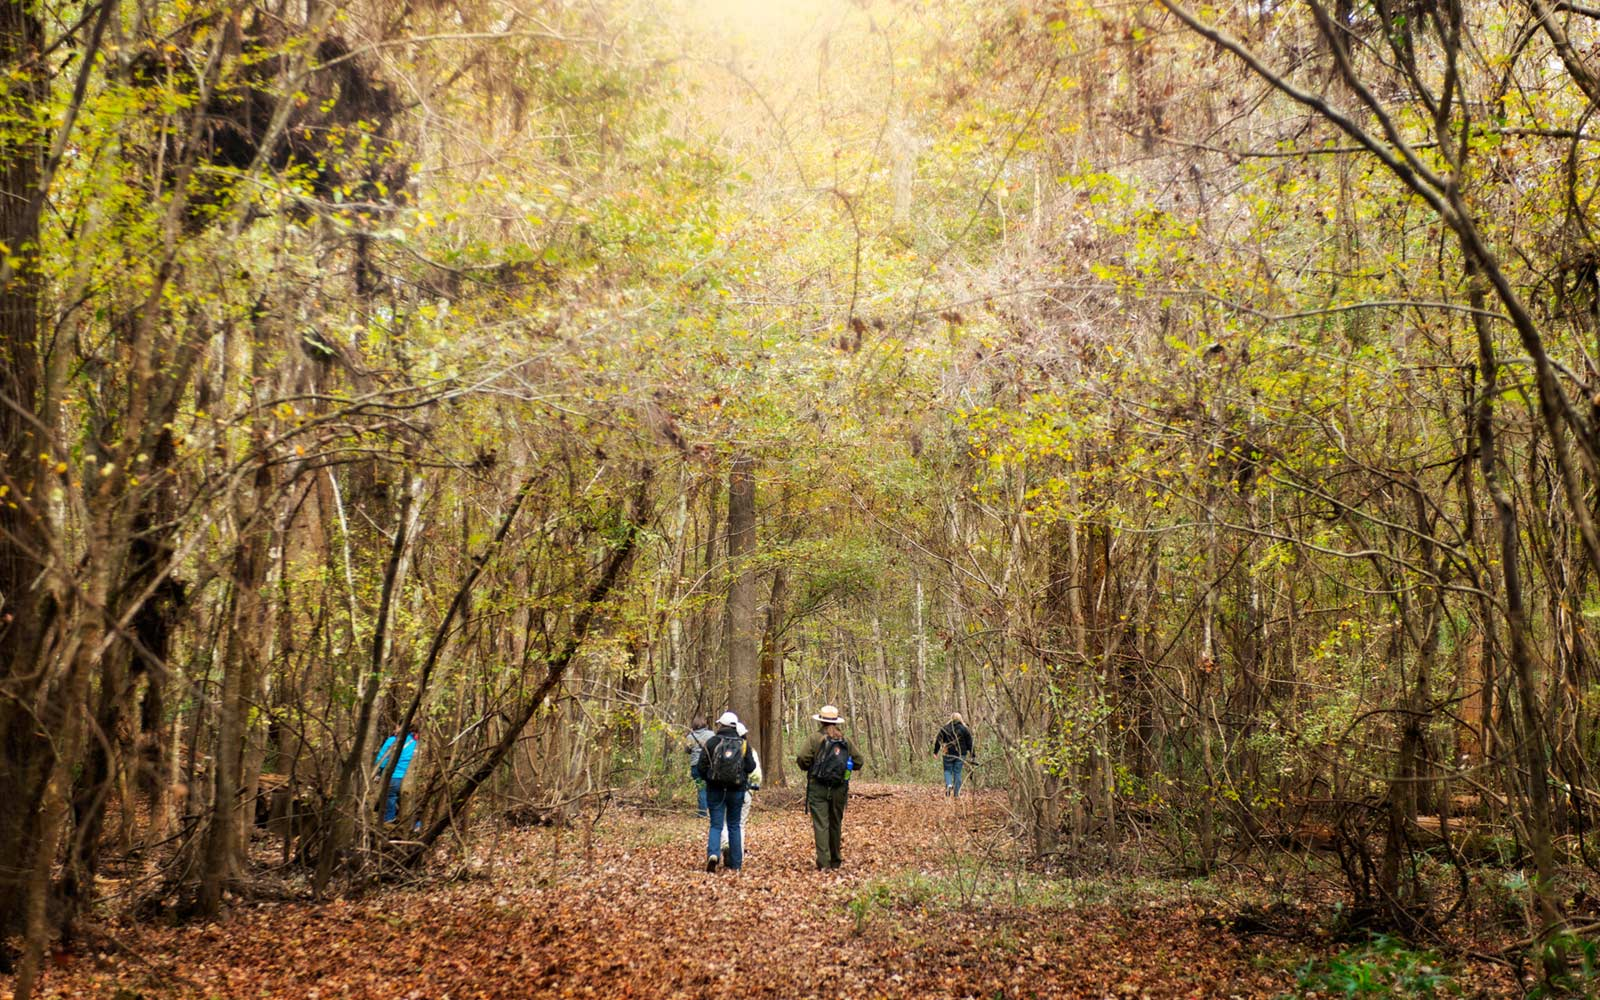 South Carolina's Only National Park Is a Hidden Gem You'll Want to Explore